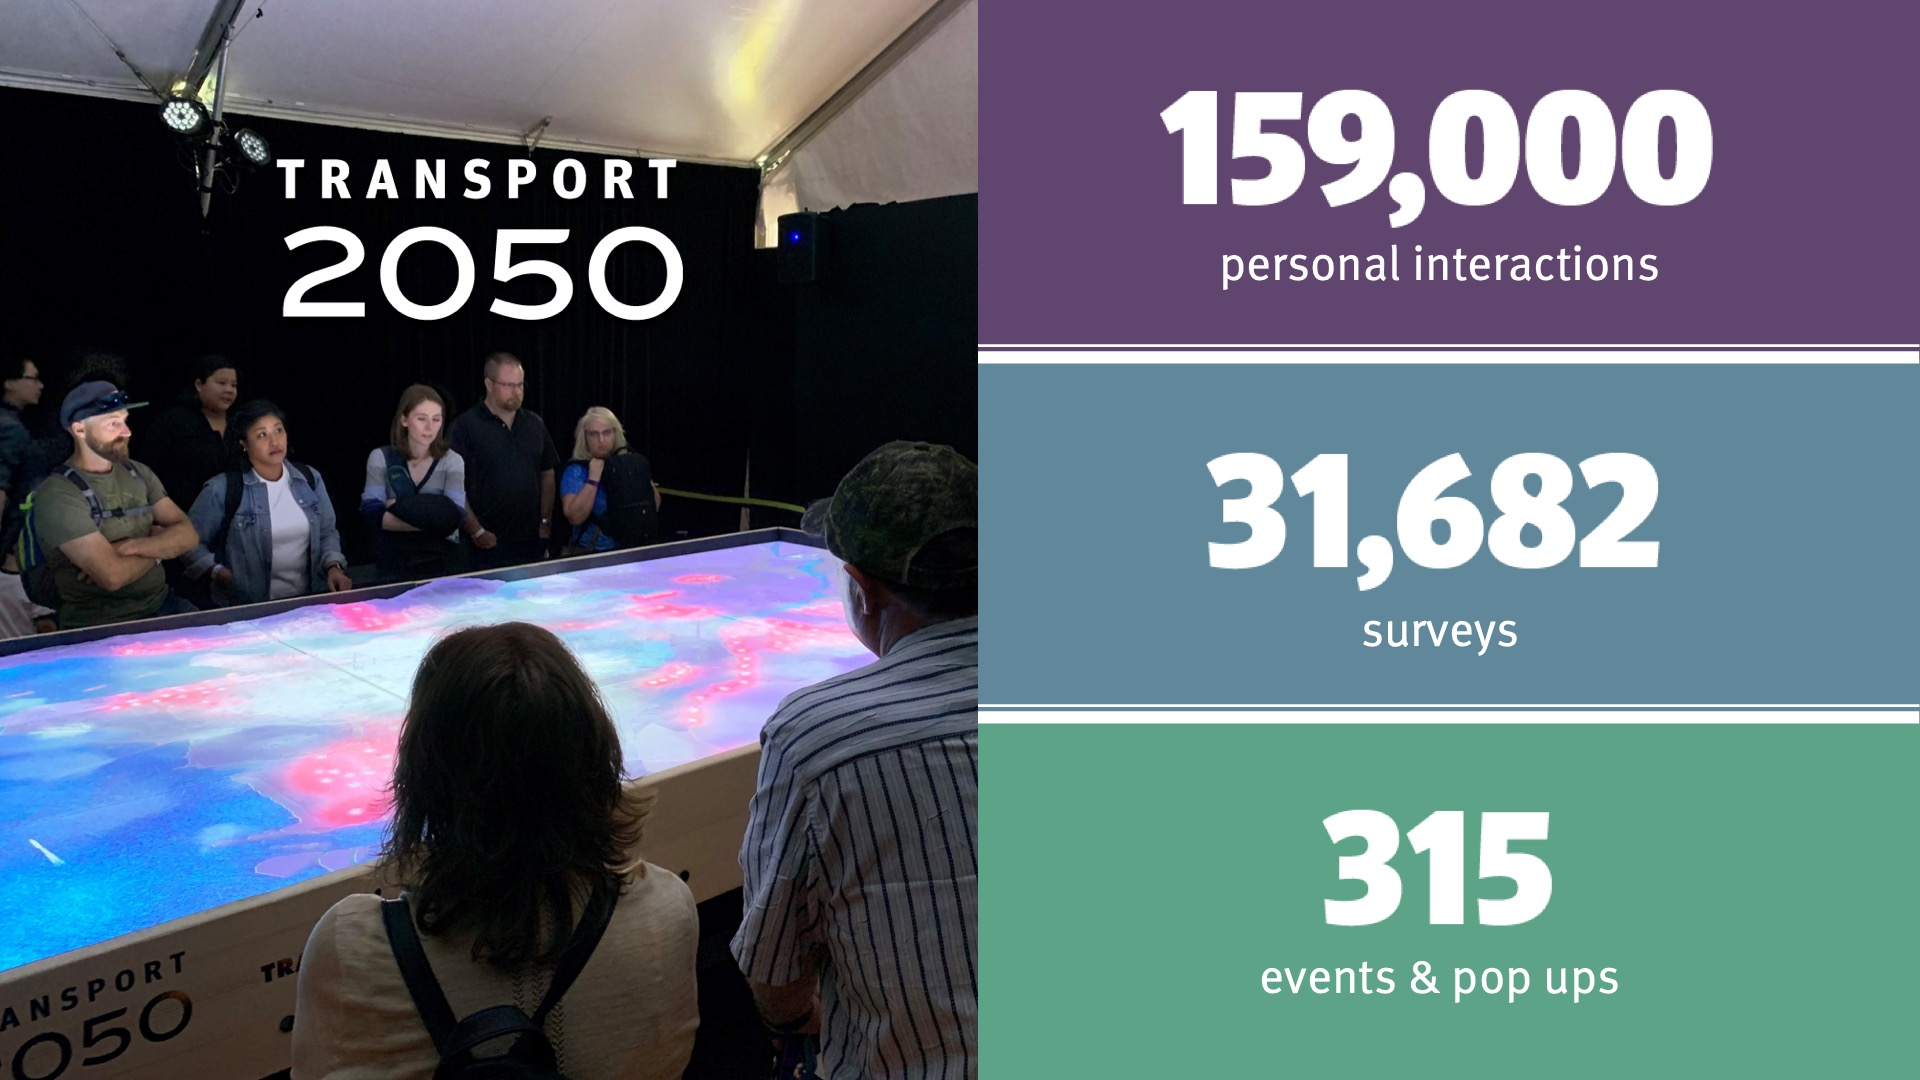 159,000 personal interactions; 31,682 surveys; and 315 events and pop-ups